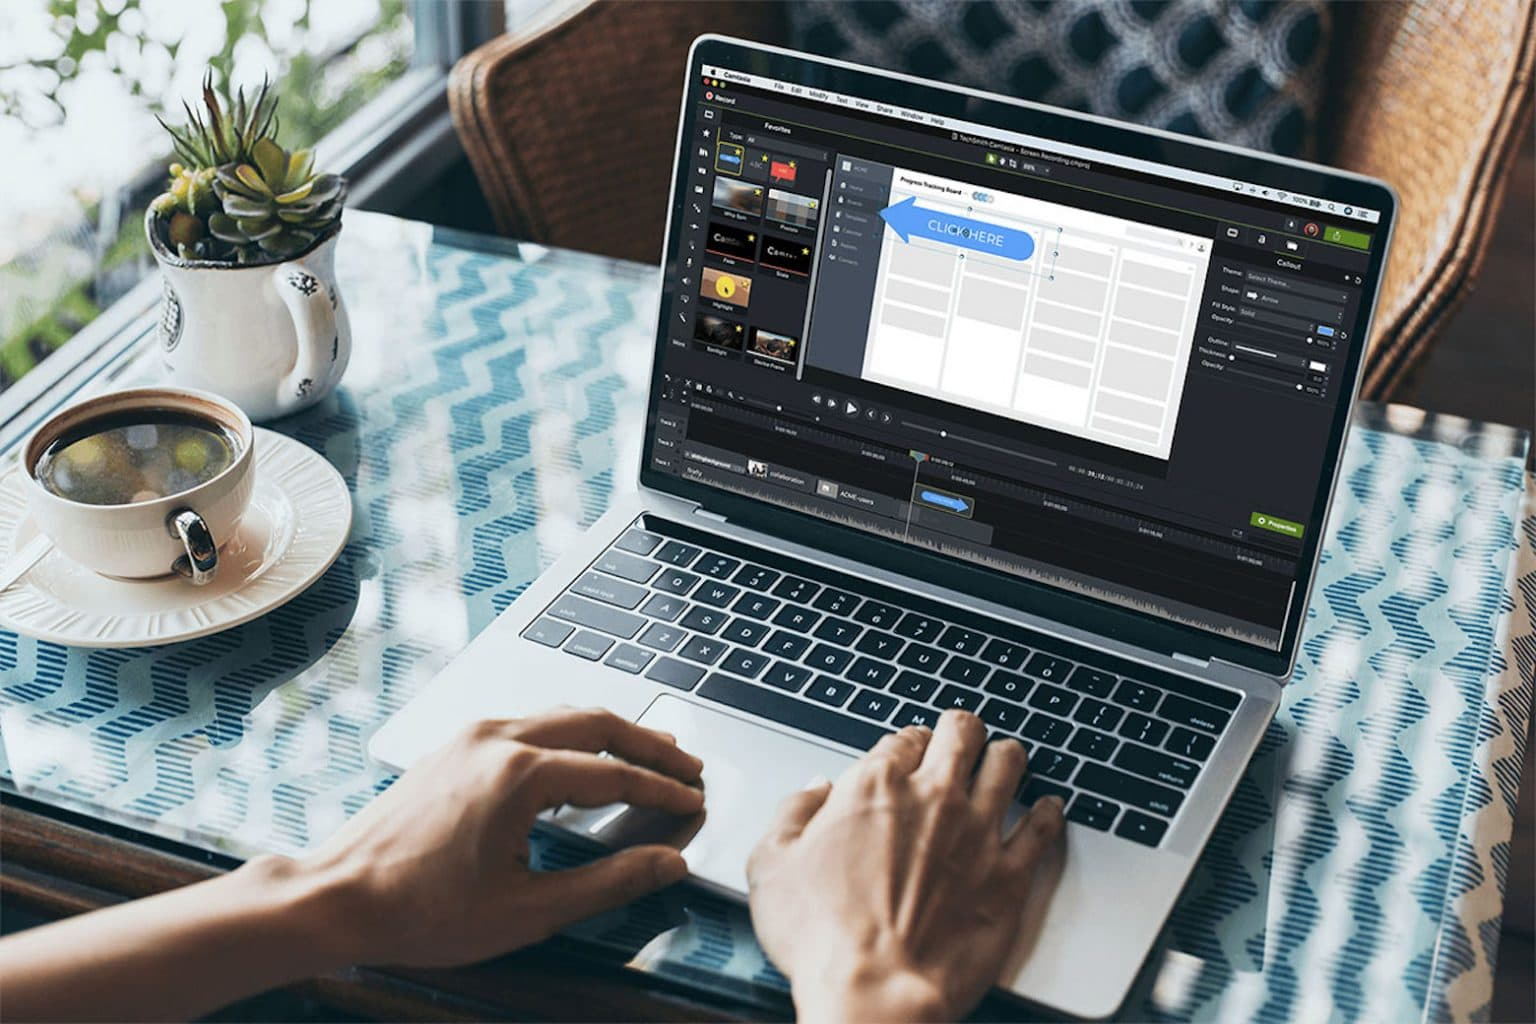 Create professional videos with this amazing editor